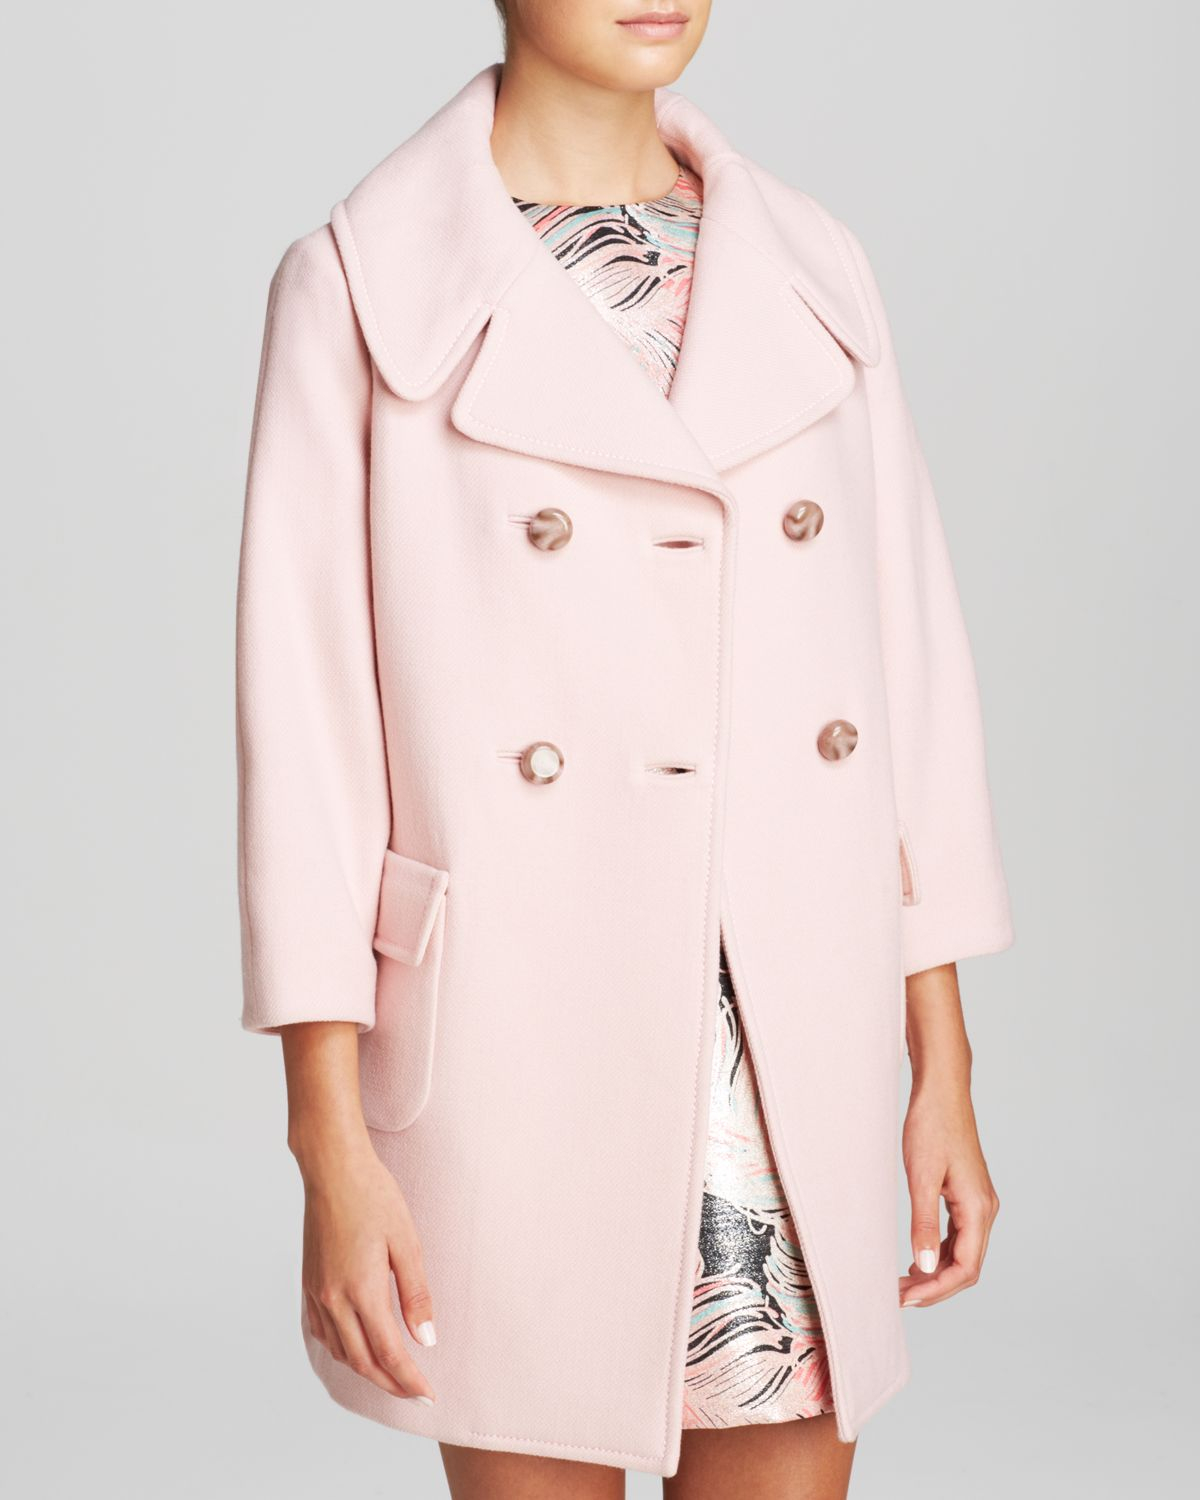 Kate spade new york Jacques Double Breasted Coat in Pink | Lyst